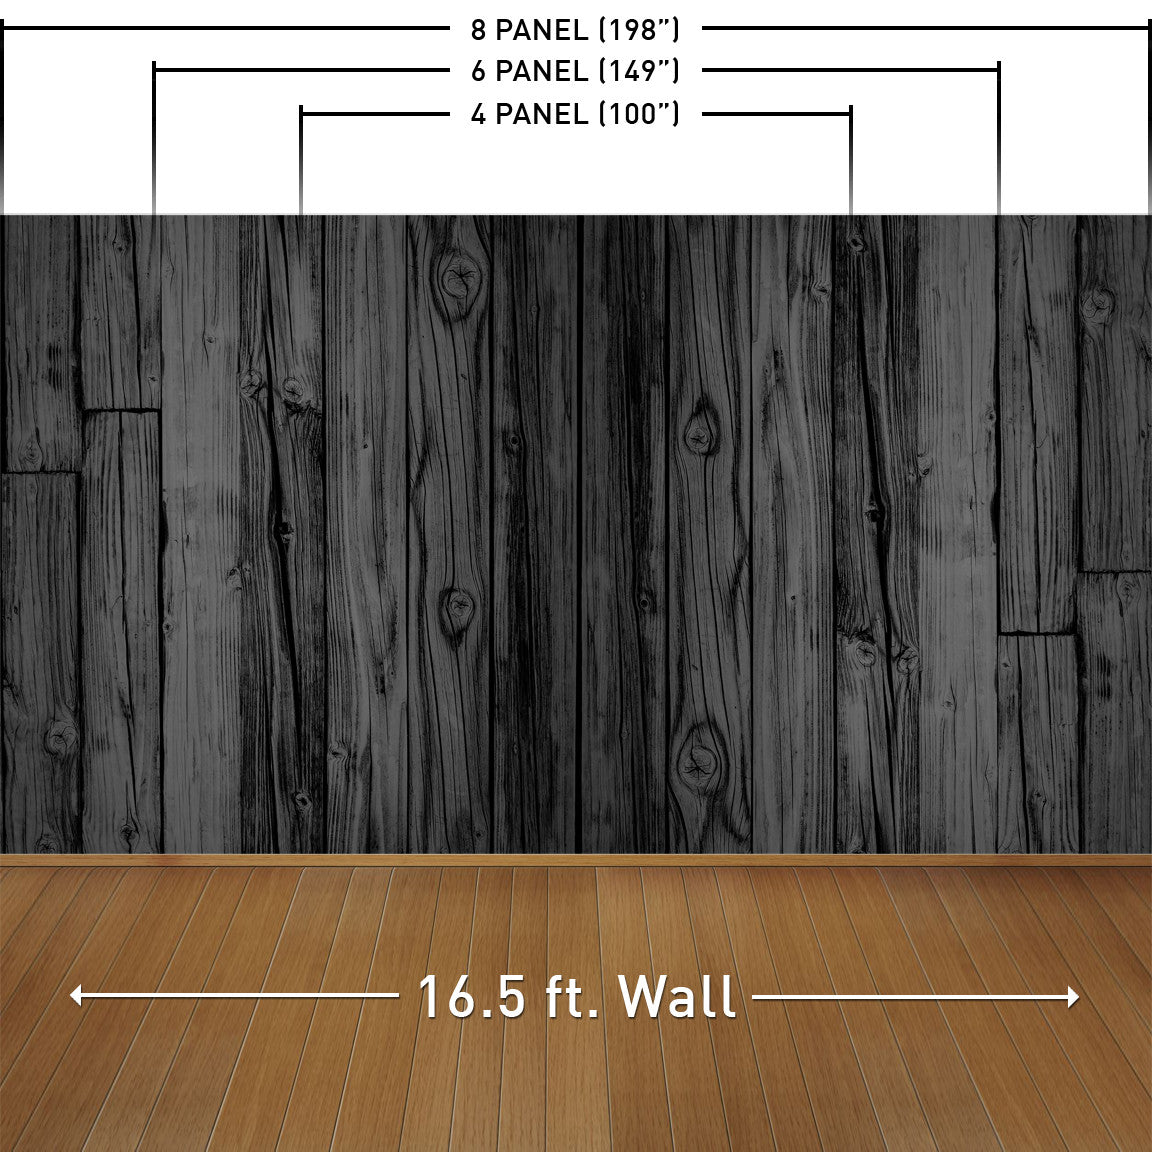 Black Stained Wood Wall Mural